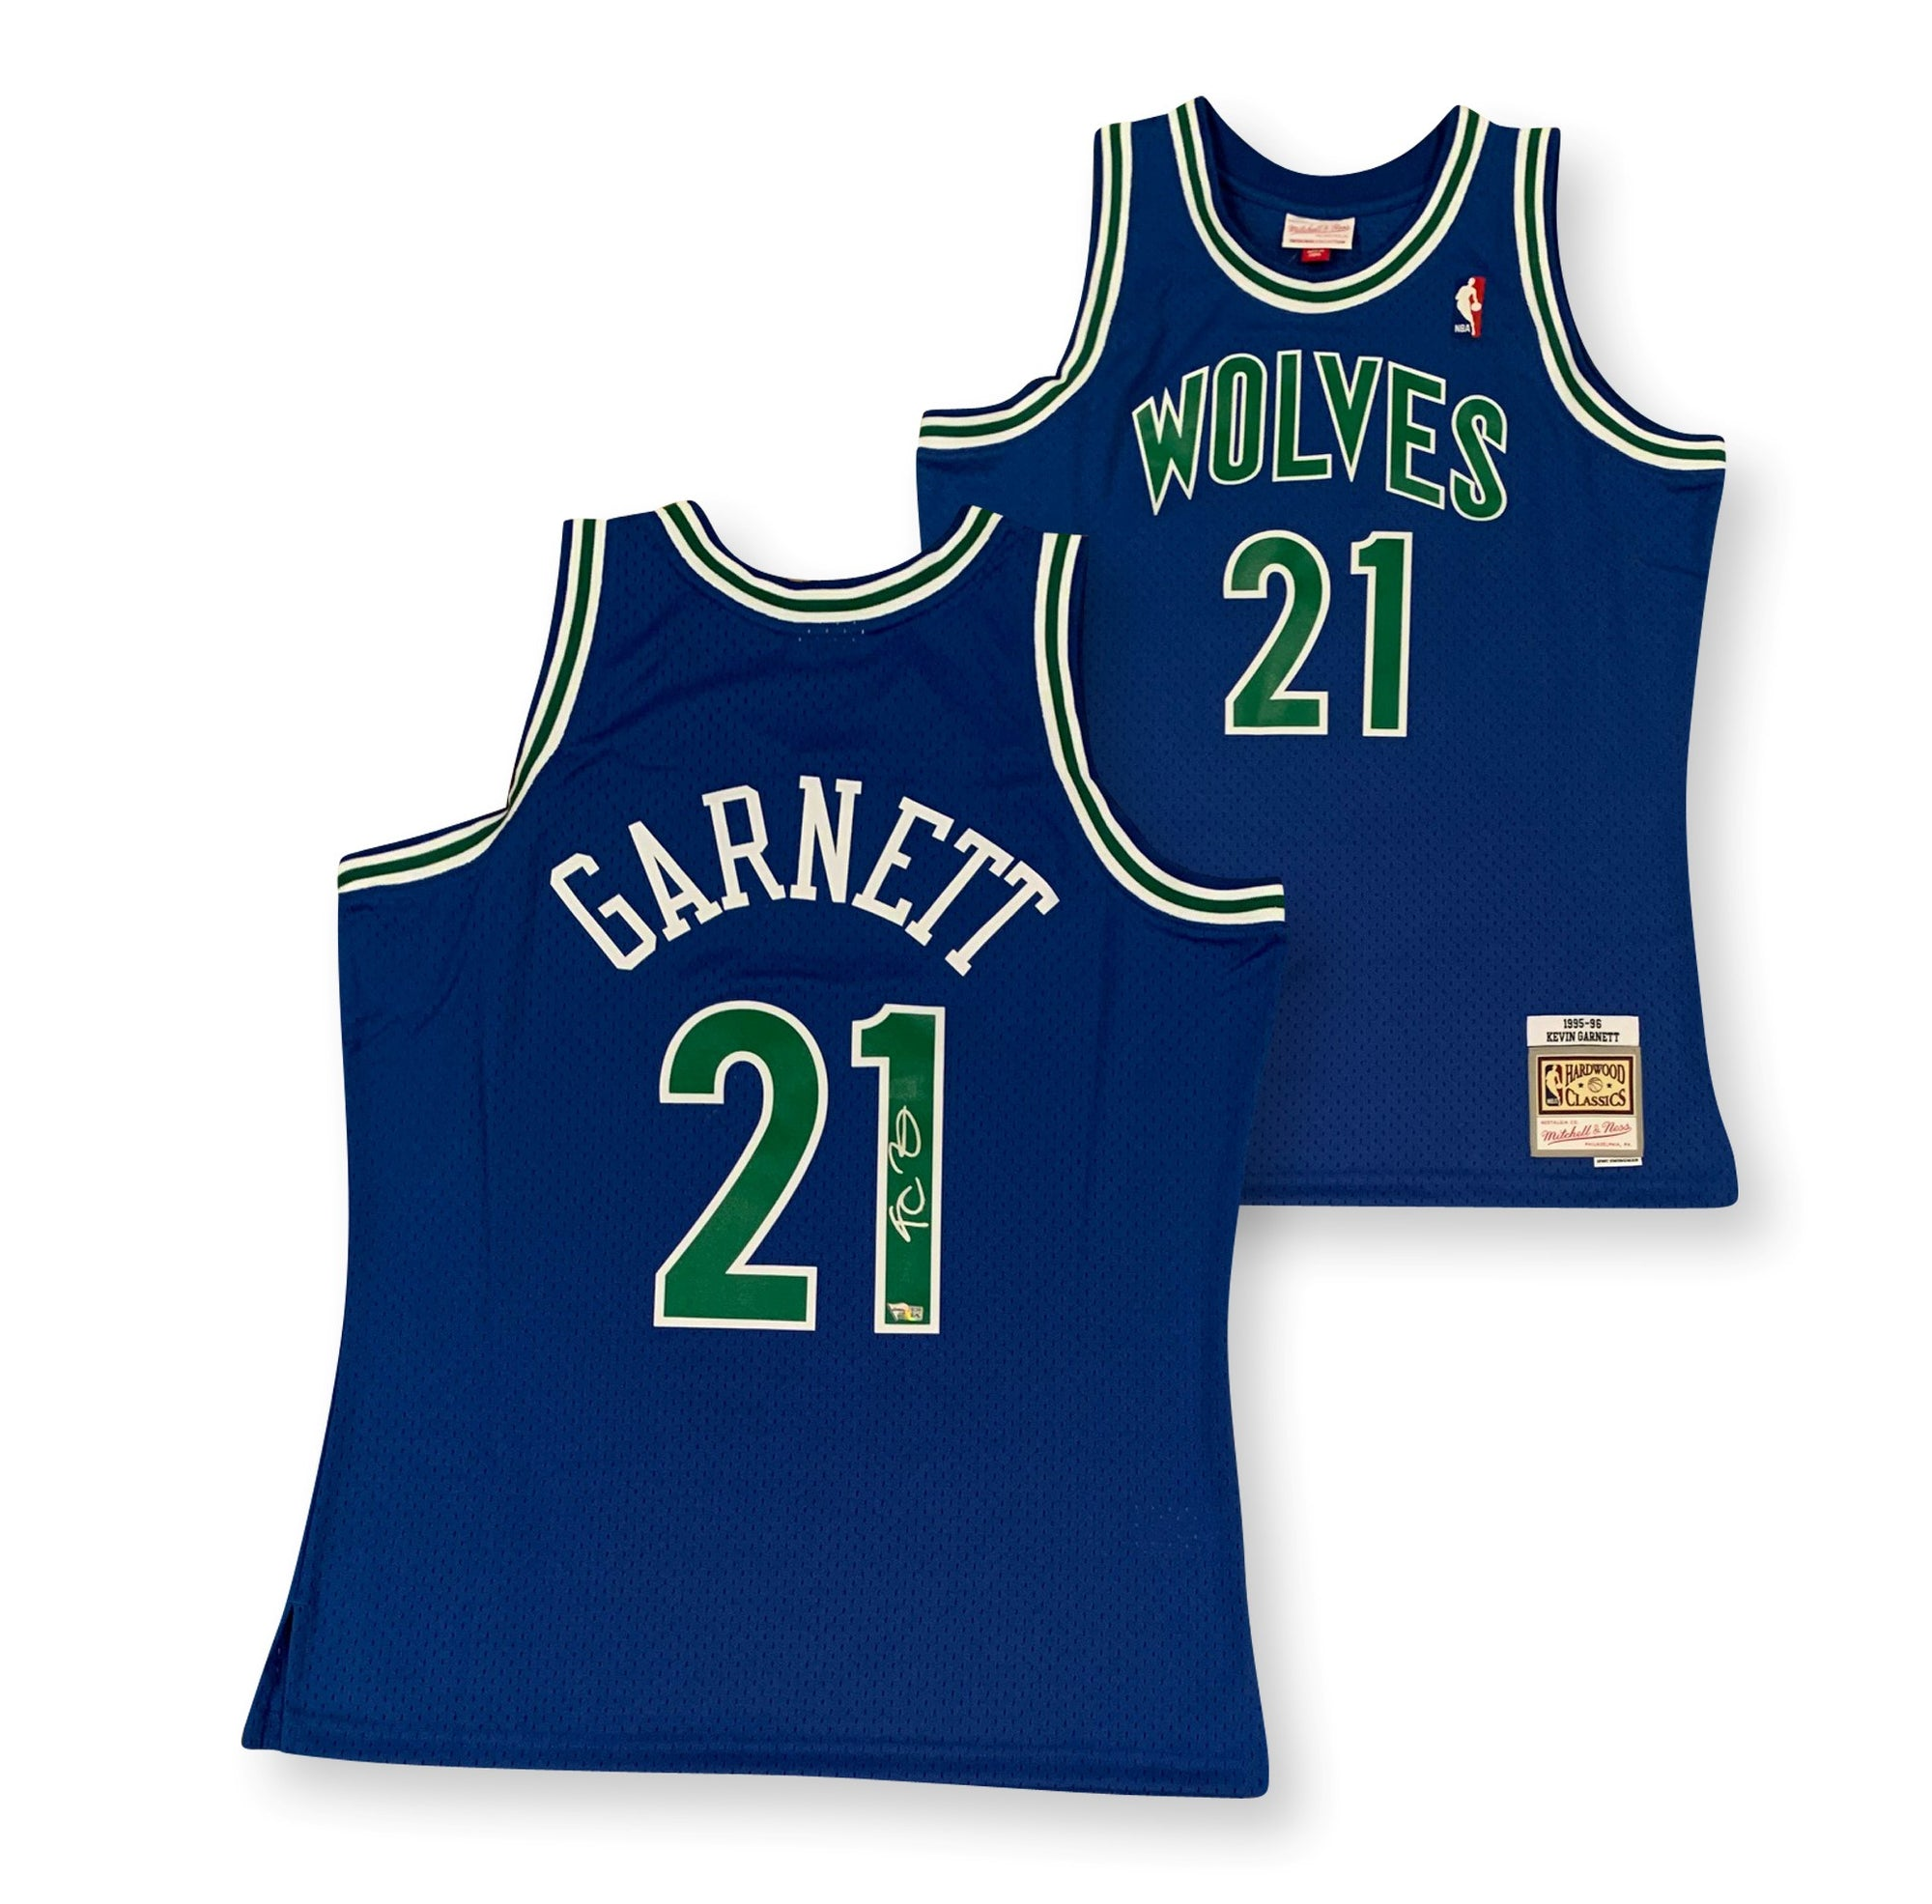 Kevin Garnett Autographed Minnesota Timberwolves 1995-1996 Mitchell and Ness NBA Swingman Signed Basketball Jersey Fanatics Authentic COA-Powers Sports Memorabilia